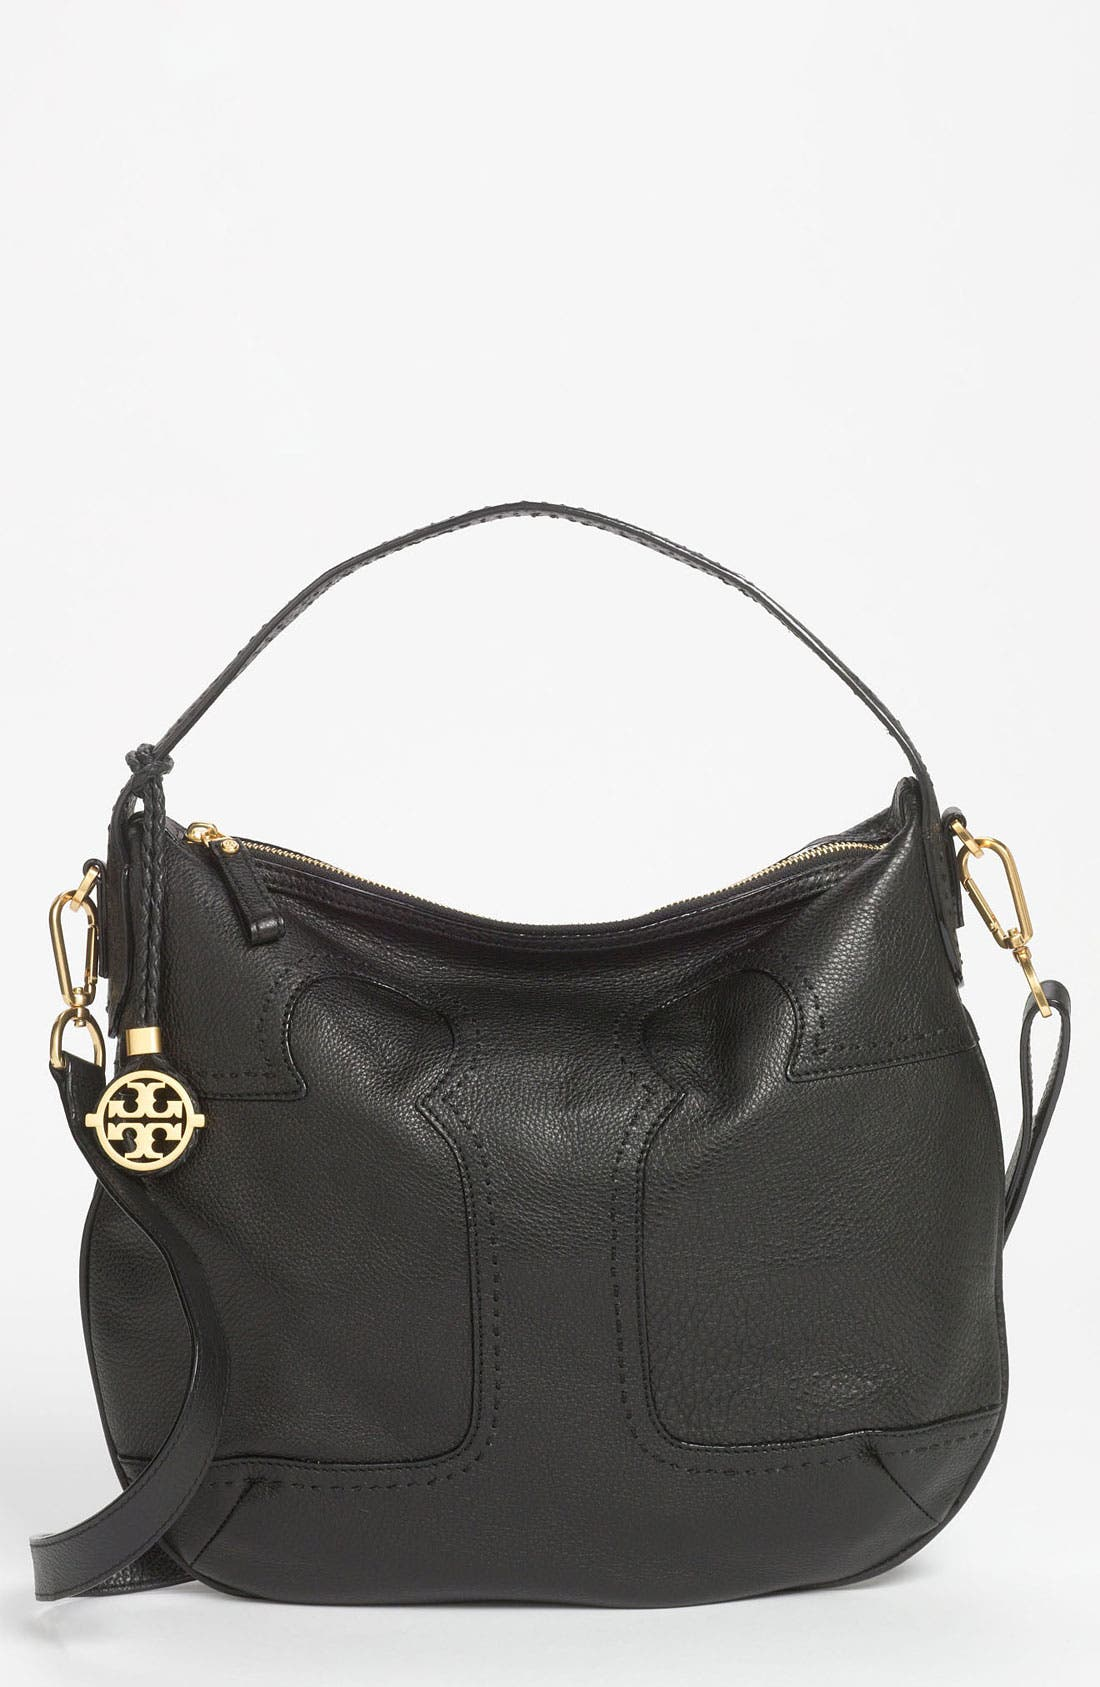 Main Image - Tory Burch 'Amalie' Leather Hobo